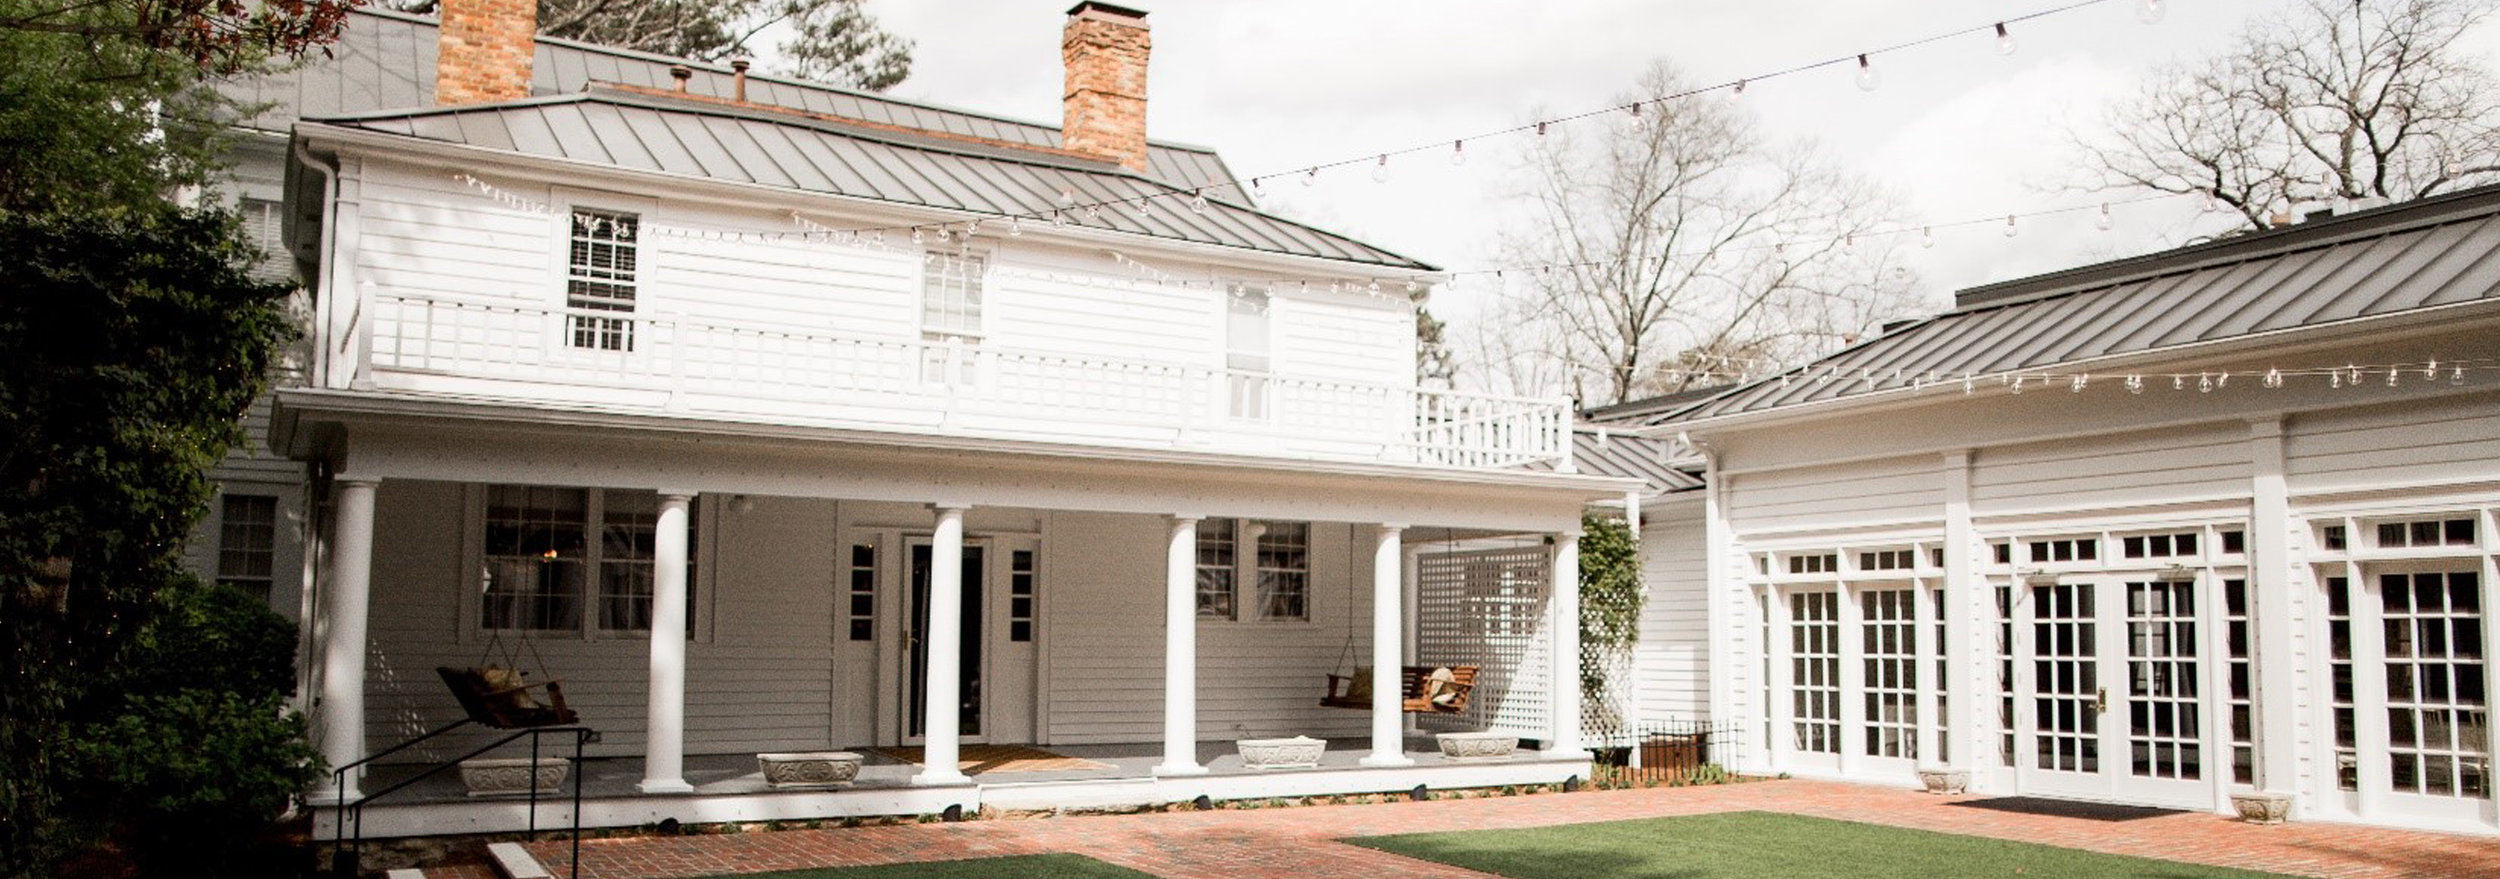 Southern Elegance with a Rustic Twist - Antebellum Era Captured Minutes from Downtown Atlanta